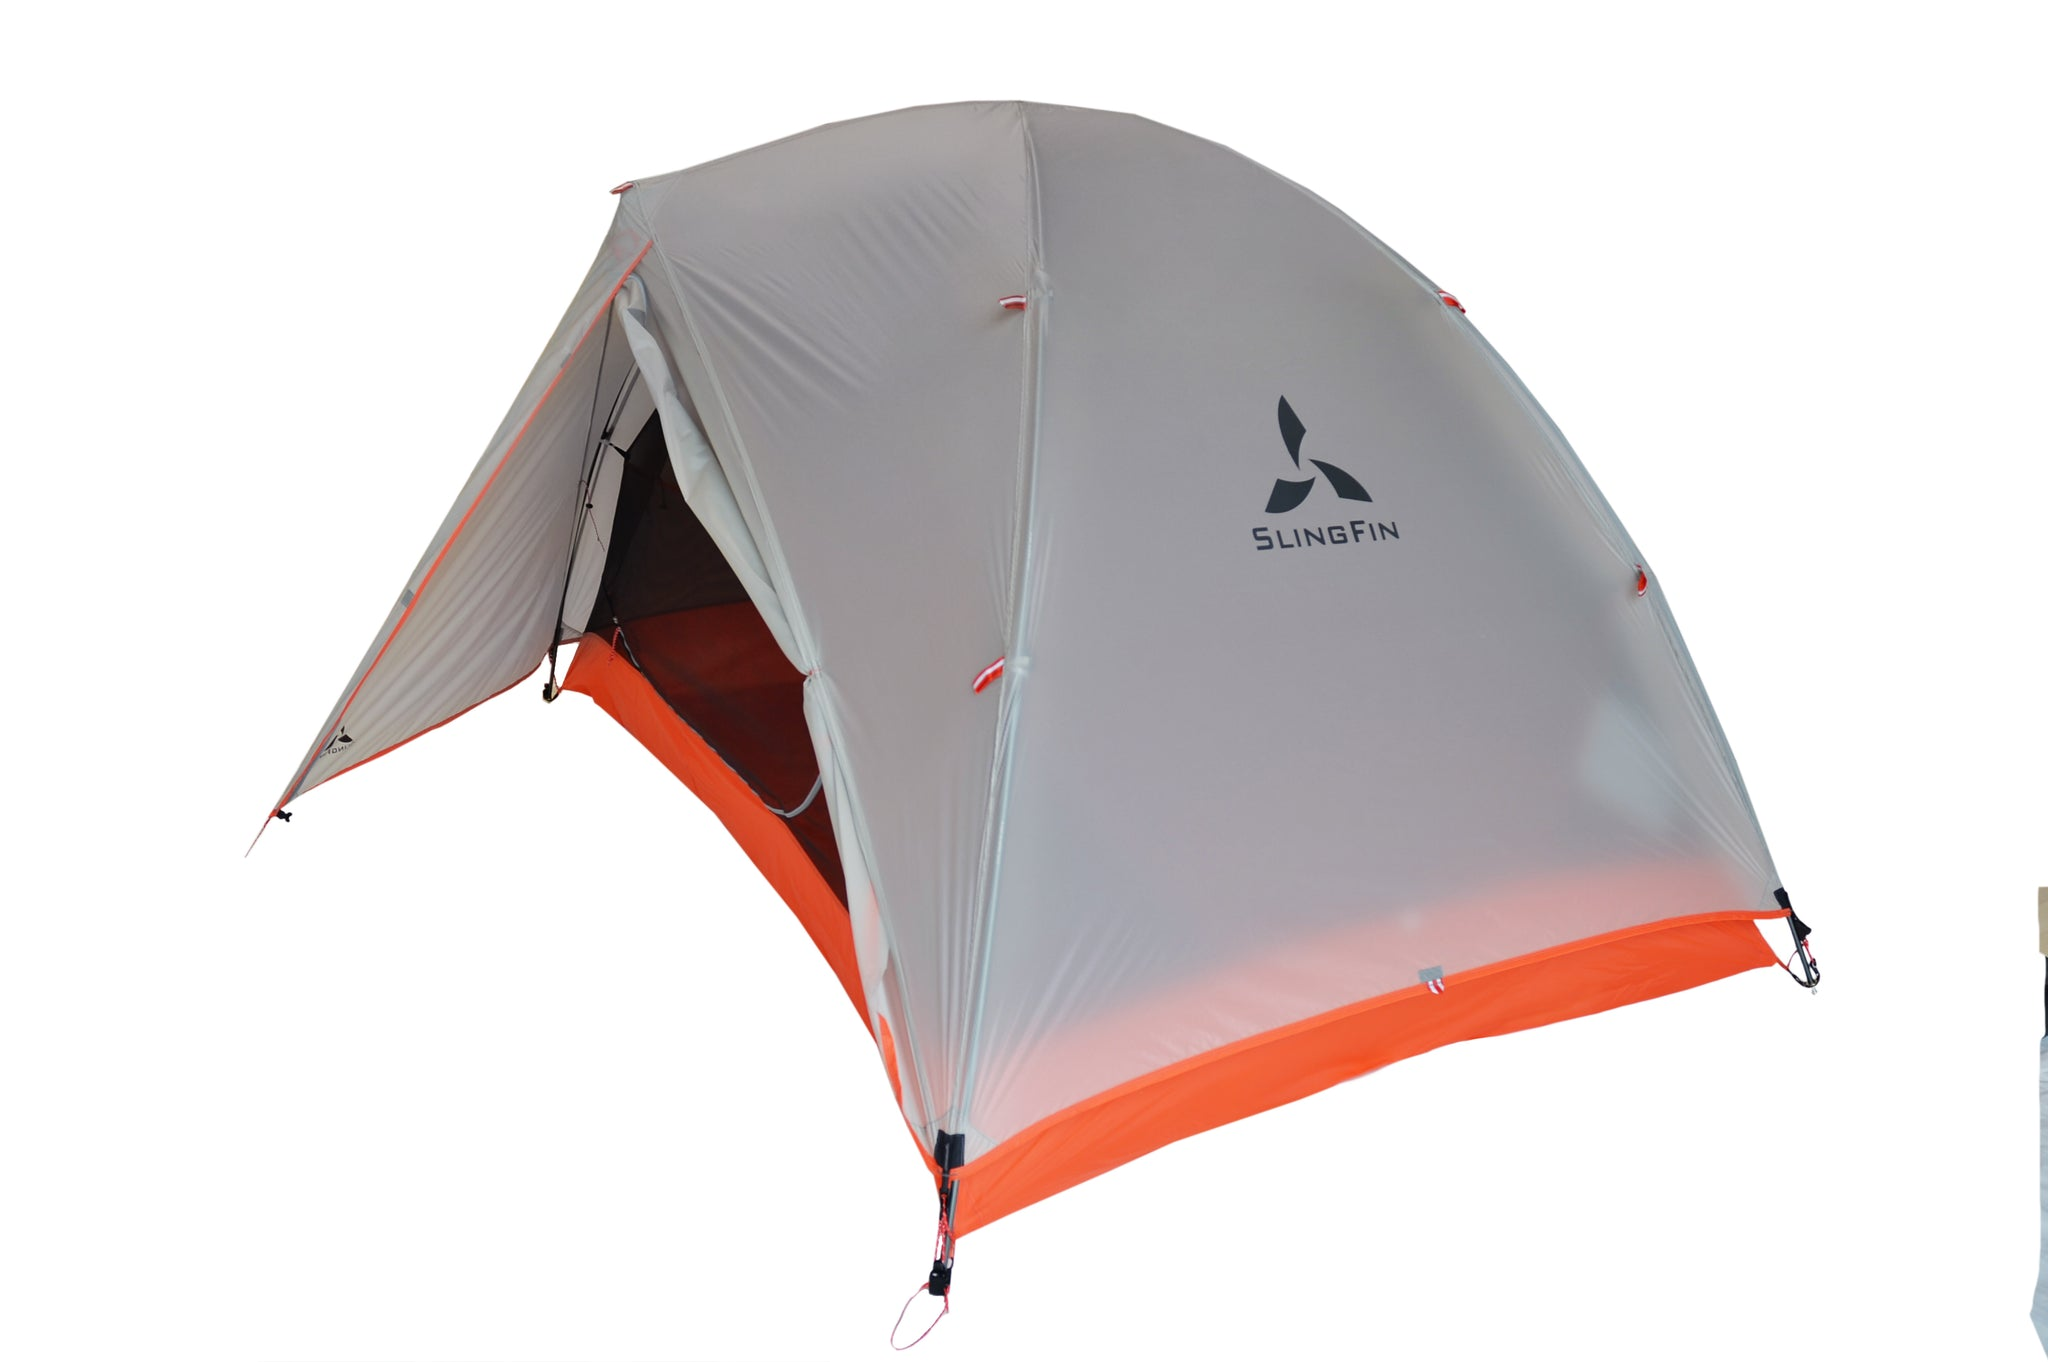 Slingfin 2 person tents